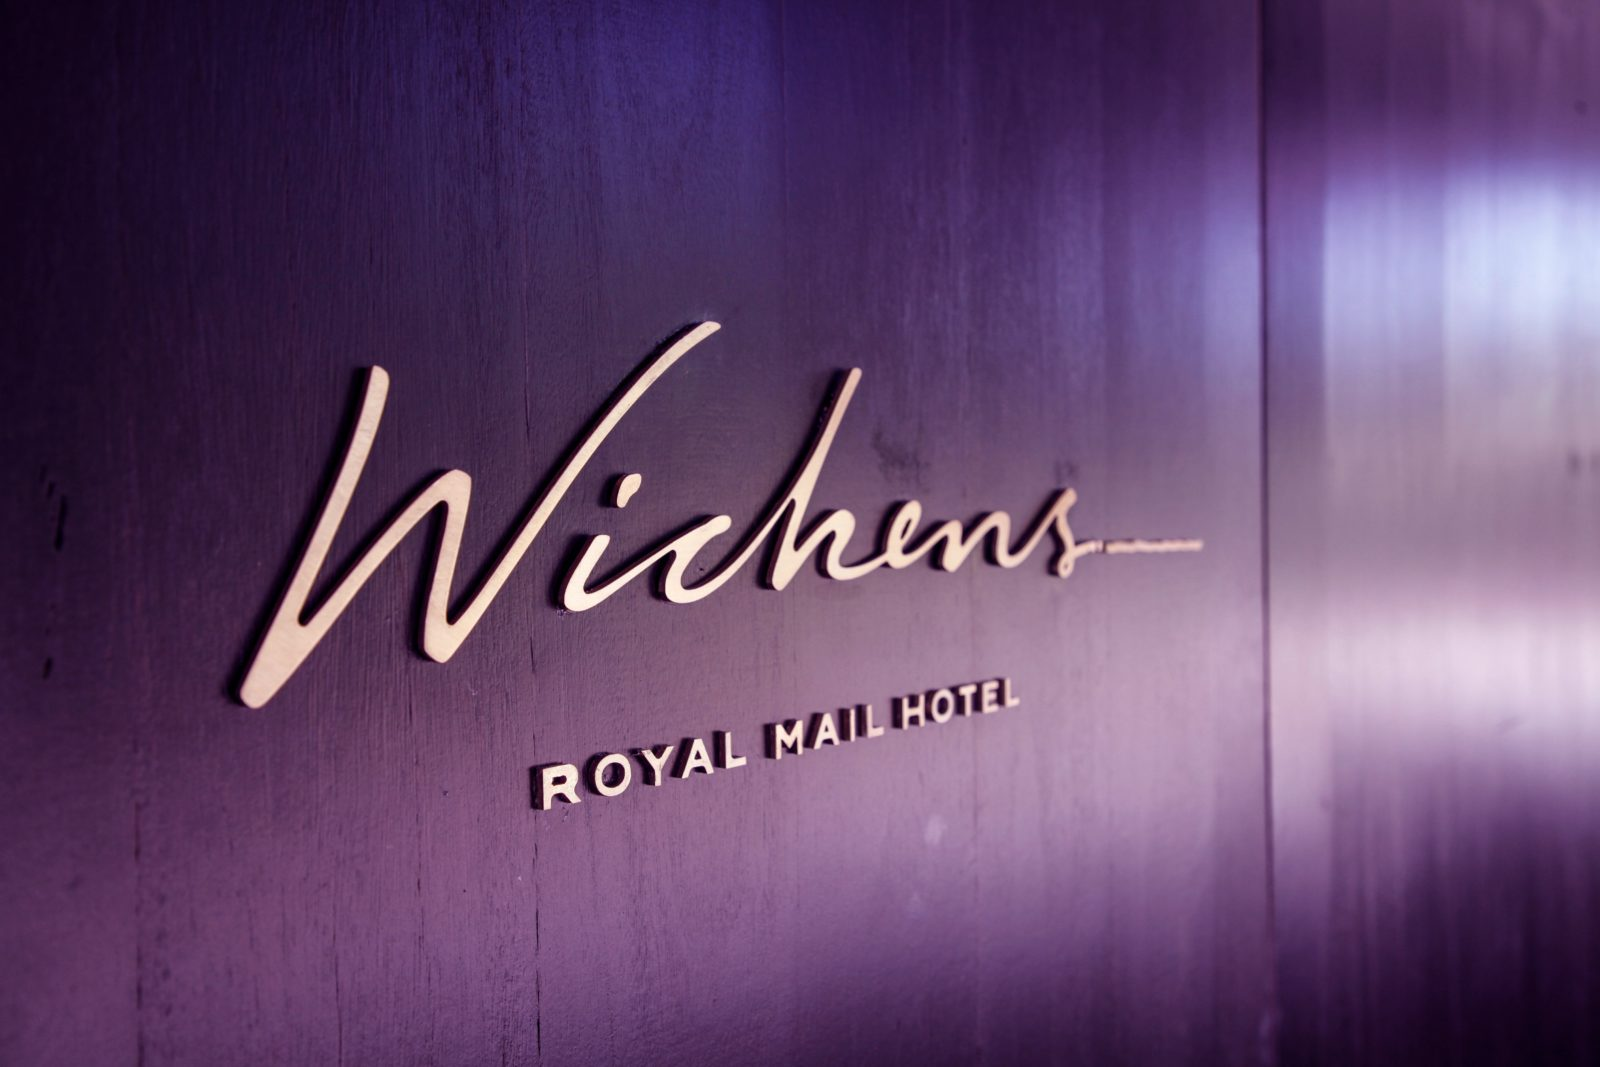 Entrance to Wickens at Royal Mail Hotel